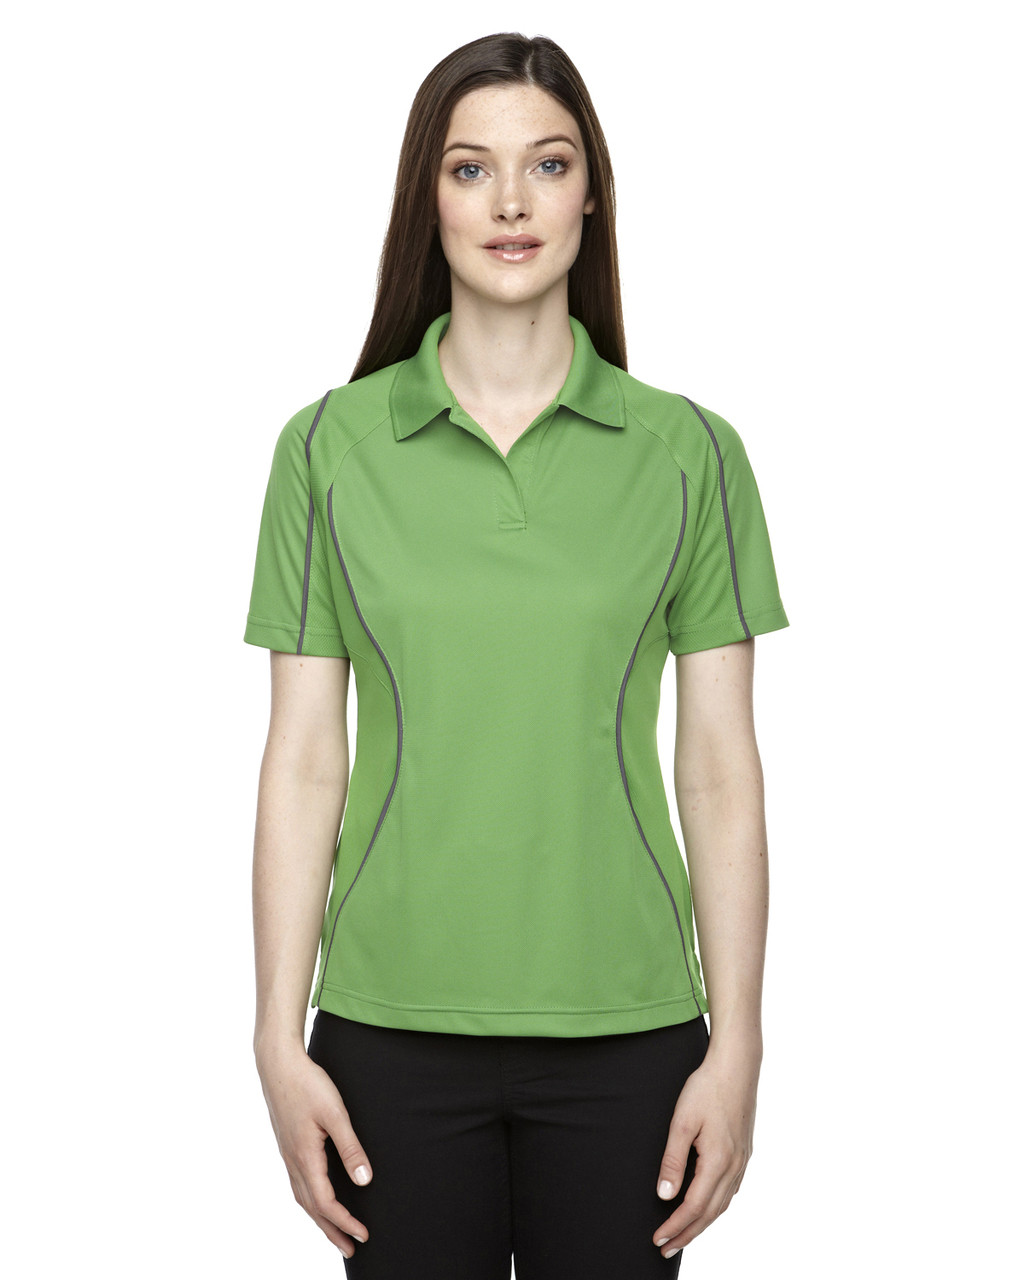 Valley Green 75107 Ash City - Extreme Eperformance Ladies' Velocity Colourblock Polo Shirt with Piping